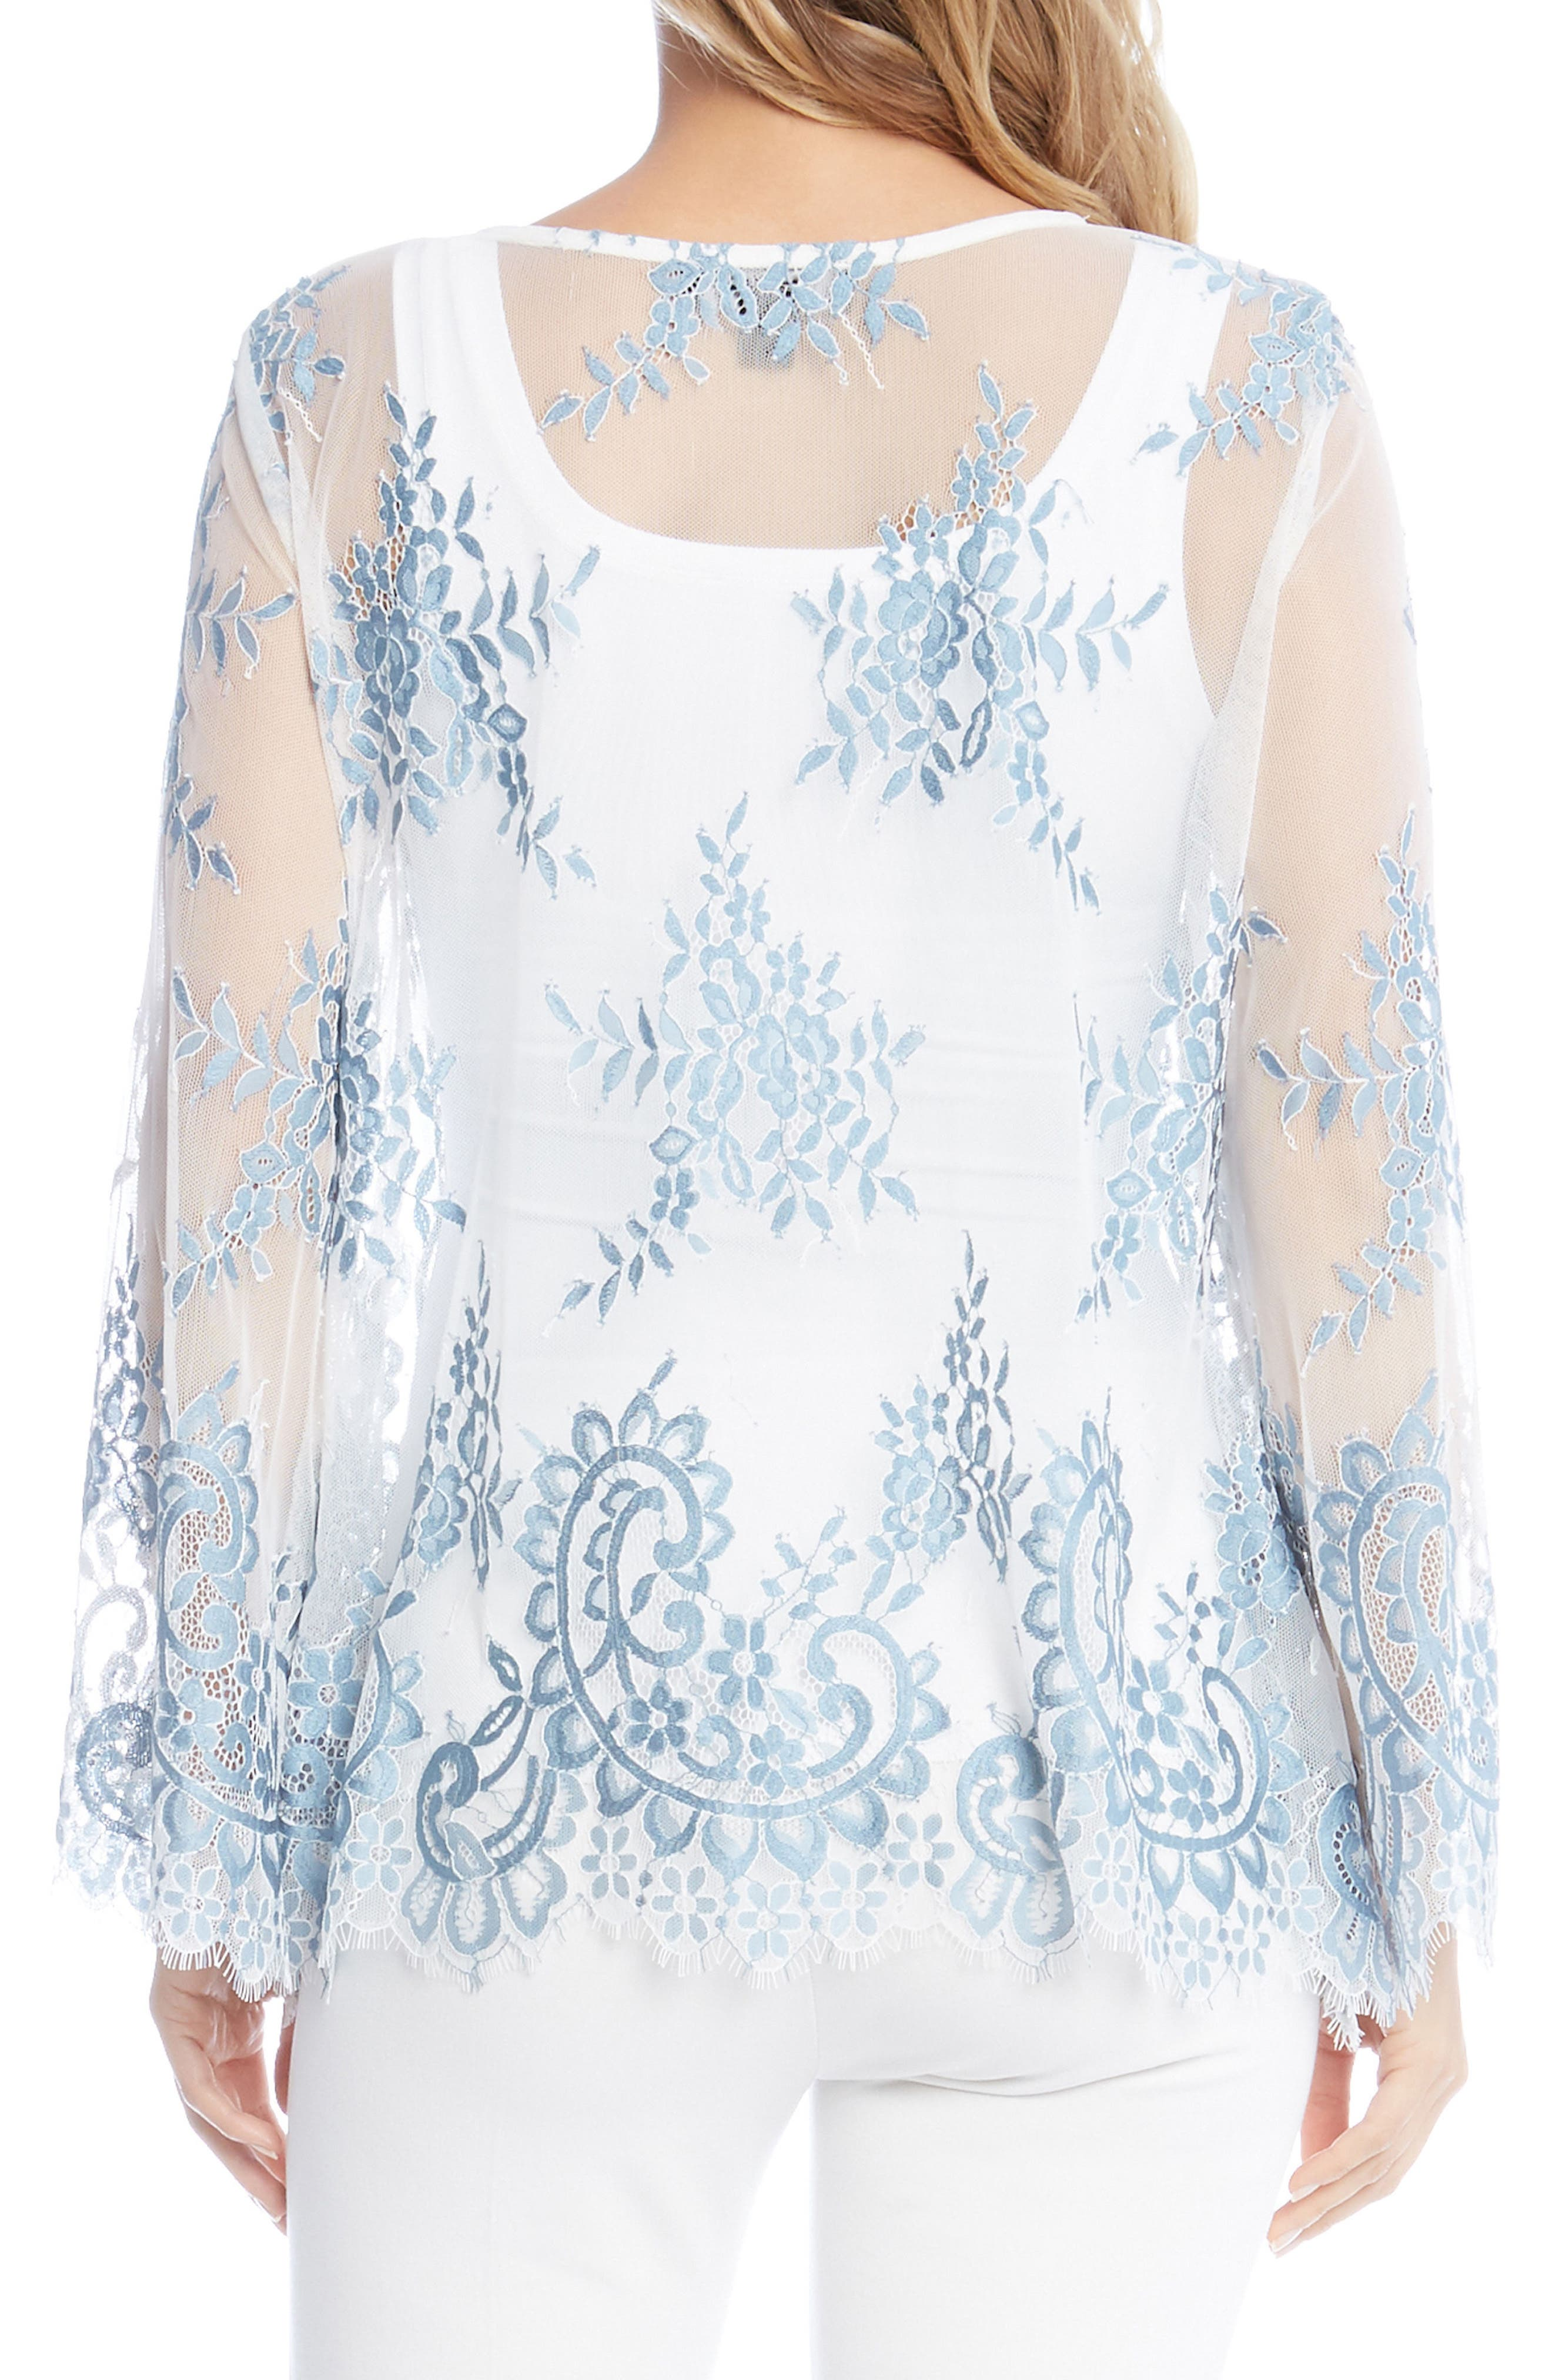 Embroidered Floral Lace Top,                             Alternate thumbnail 2, color,                             451